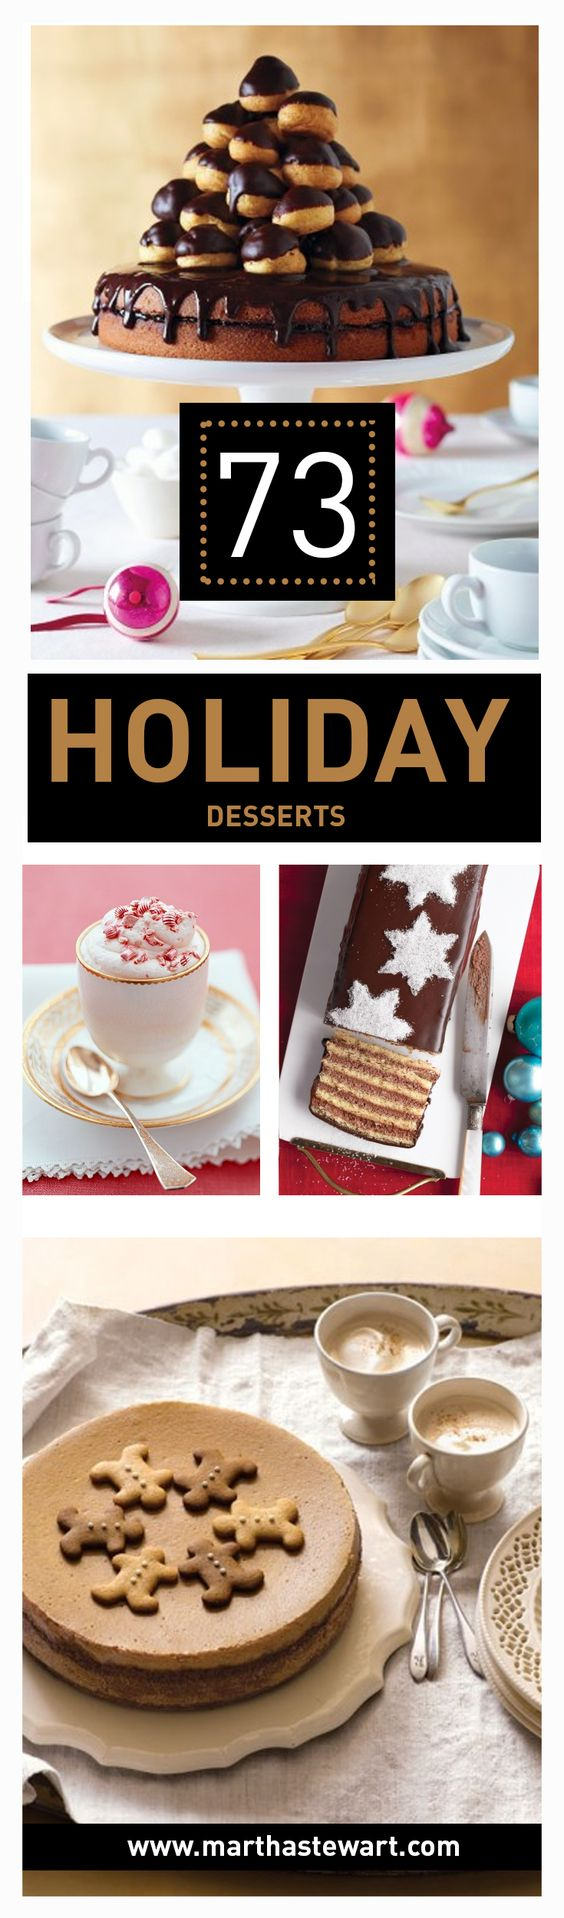 holiday desserts, including triple-chocolate peppermint trifle ...